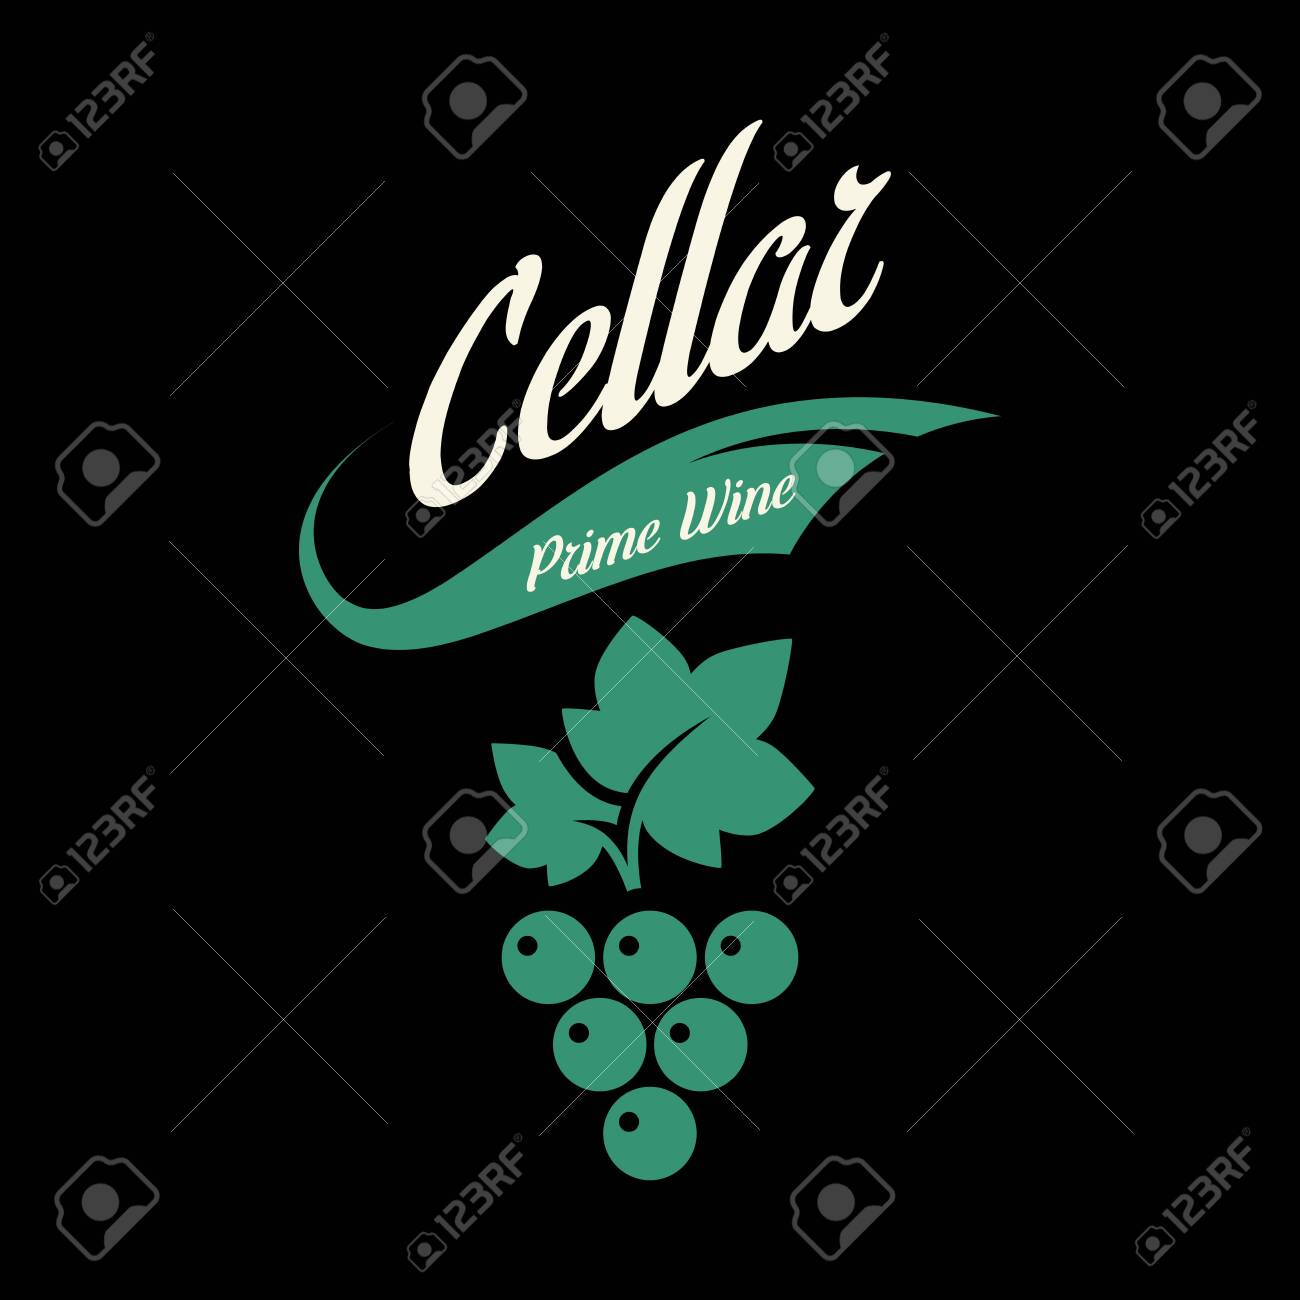 Modern wine vector logo sign for tavern, restaurant, house, shop, store, club and cellar isolated on black background. Premium quality vinery logotype illustration. Fashion brand badge design template. - 120438788